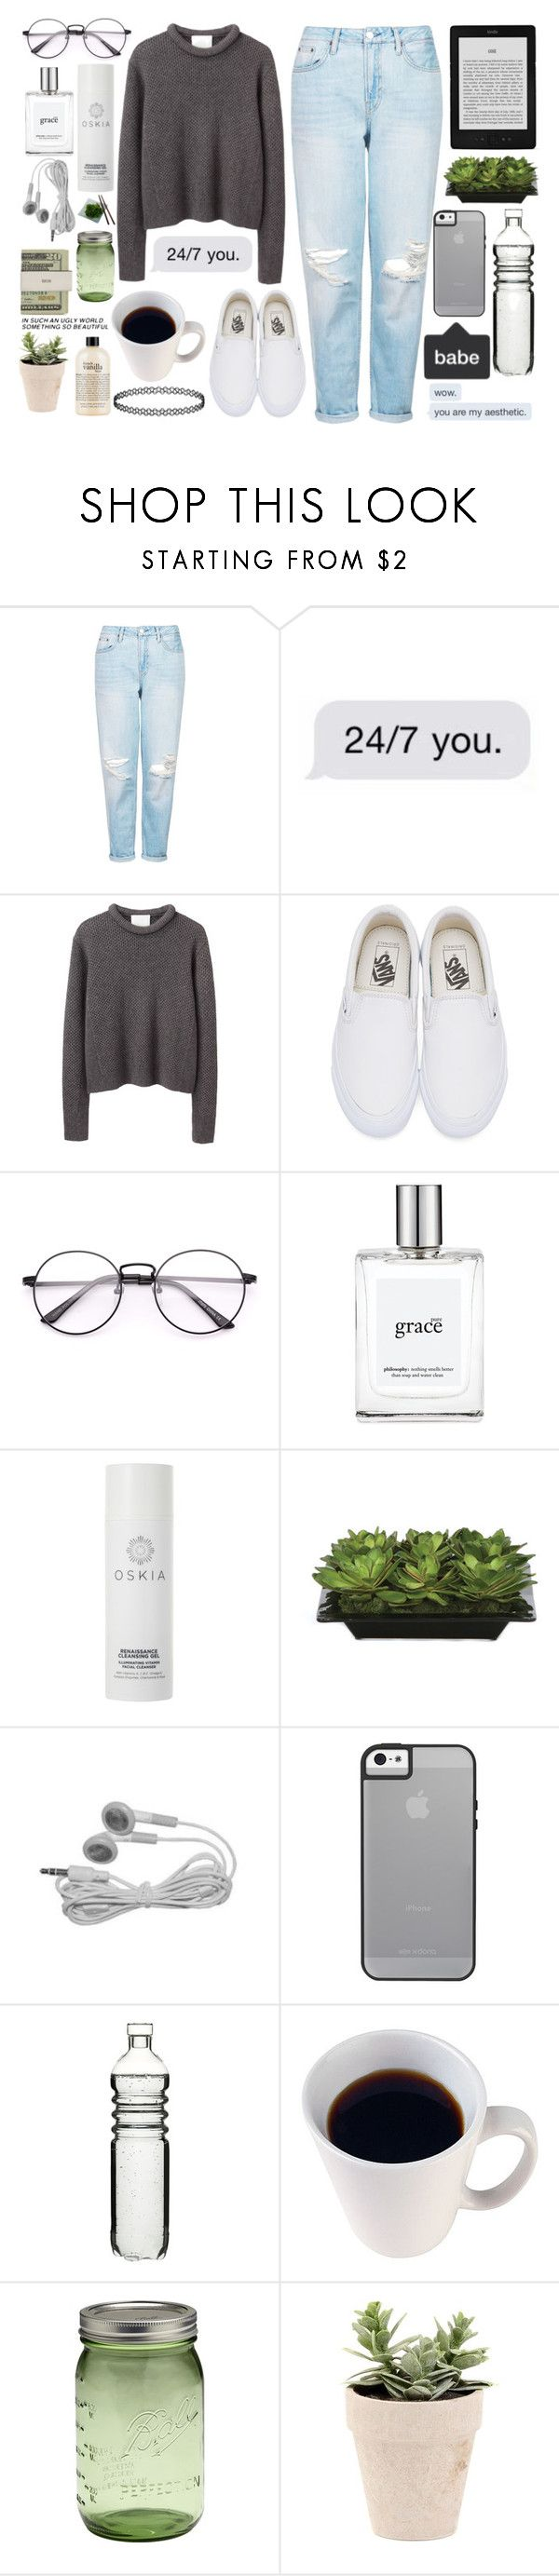 """my aesthetic"" by simply-sacraficed ❤ liked on Polyvore featuring Topshop, 3.1 Phillip Lim, Vans, philosophy, Oskia, Lux-Art Silks, Dot & Bo, Jura and Jack Spade"